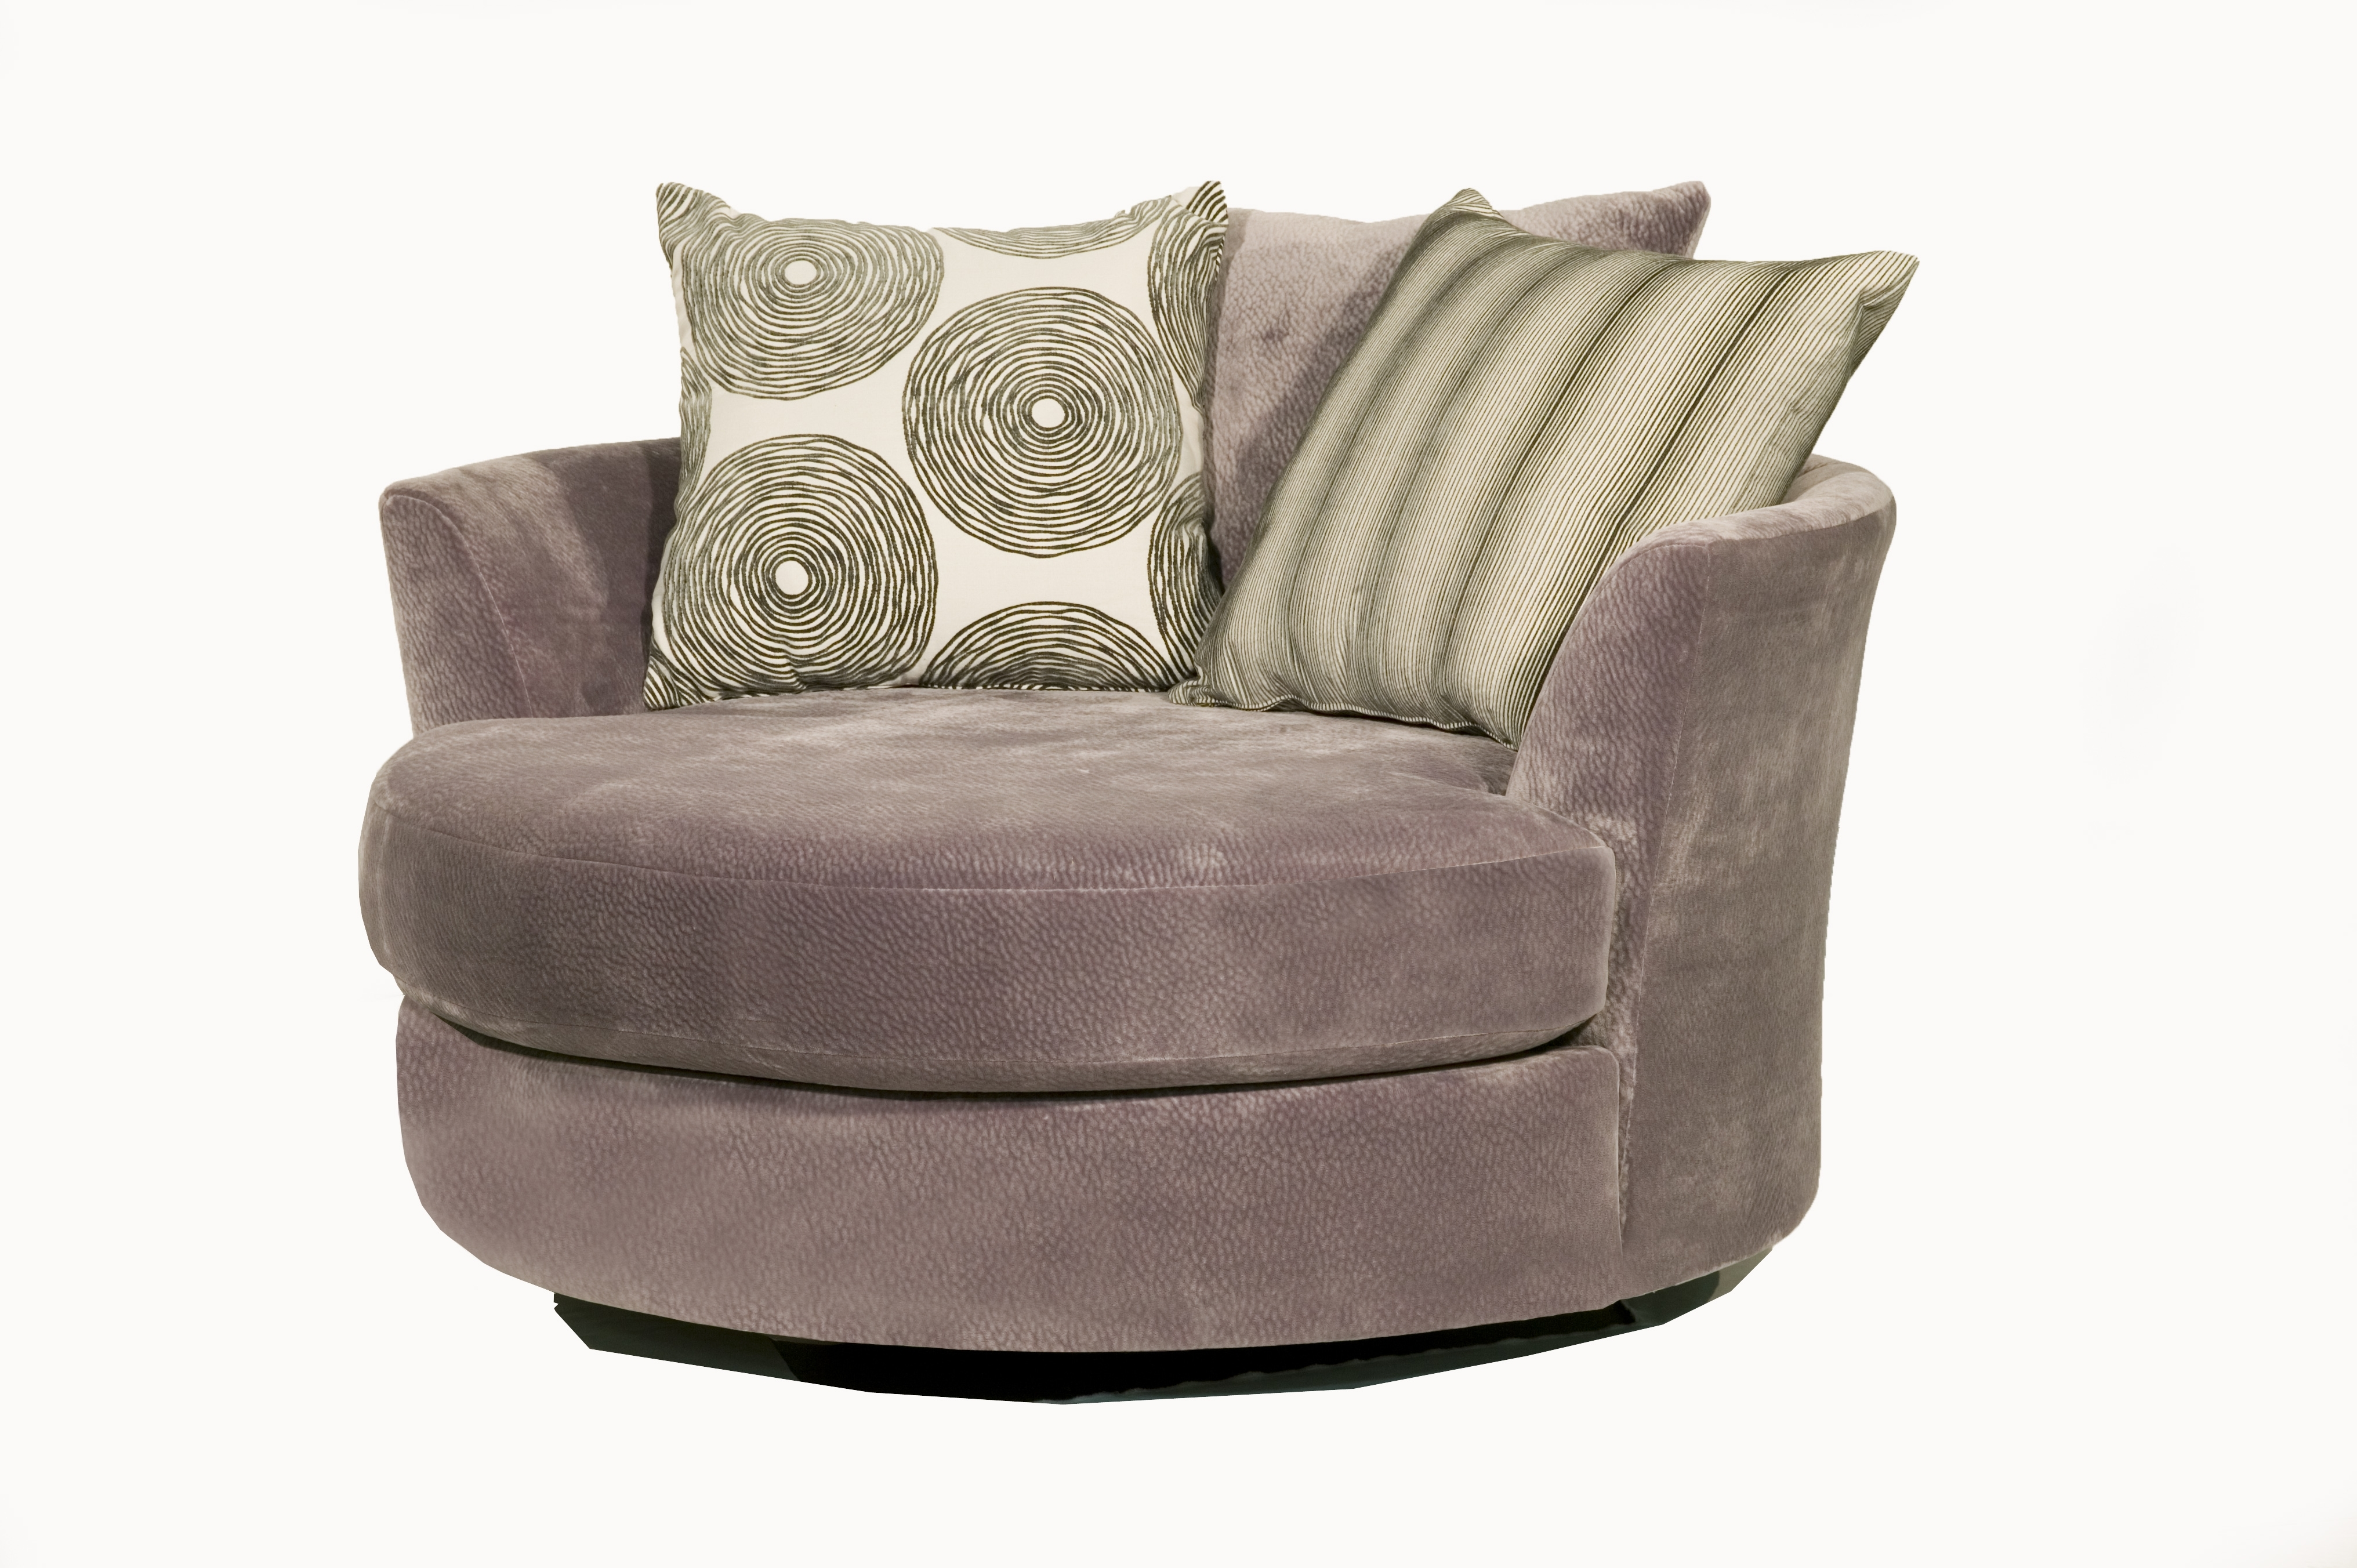 Sofas With Swivel Chair With Regard To Most Up To Date Jozz Round Swivel Chair (35 Photos) (View 5 of 20)